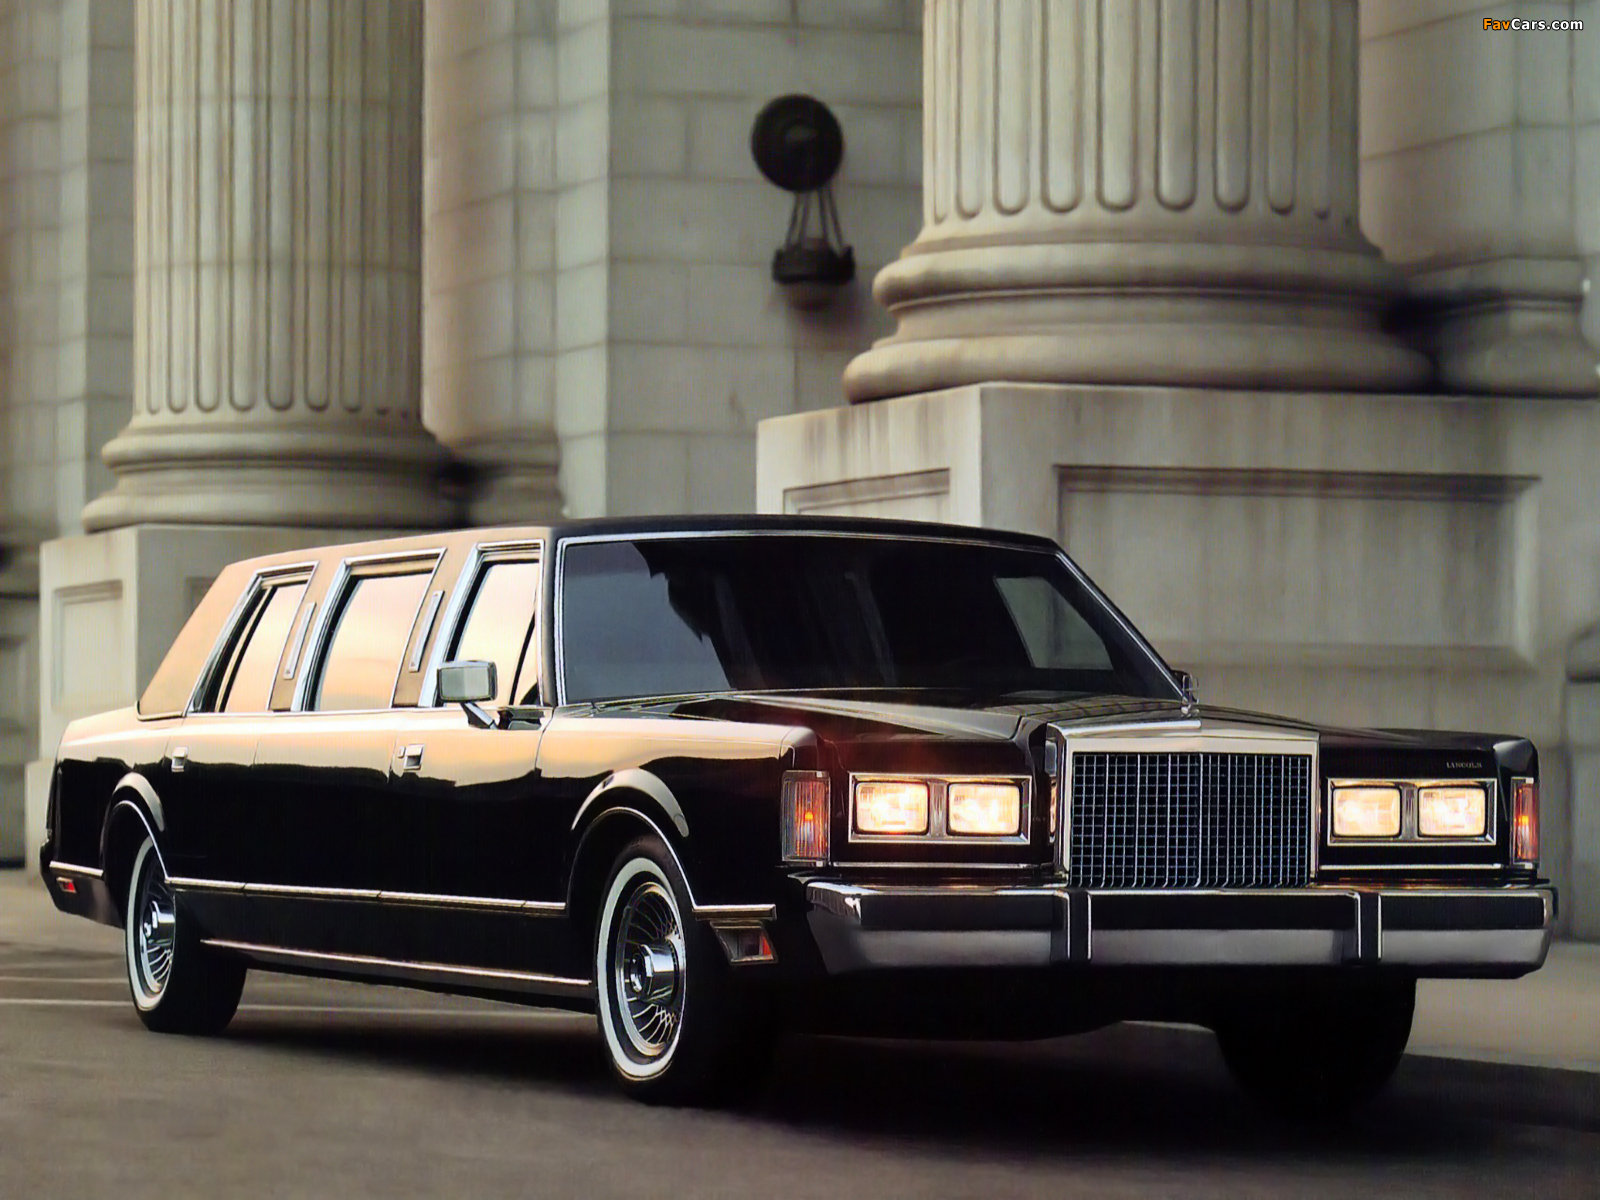 Lincoln Town Car Limousine 1985 89 Wallpapers 1600x1200